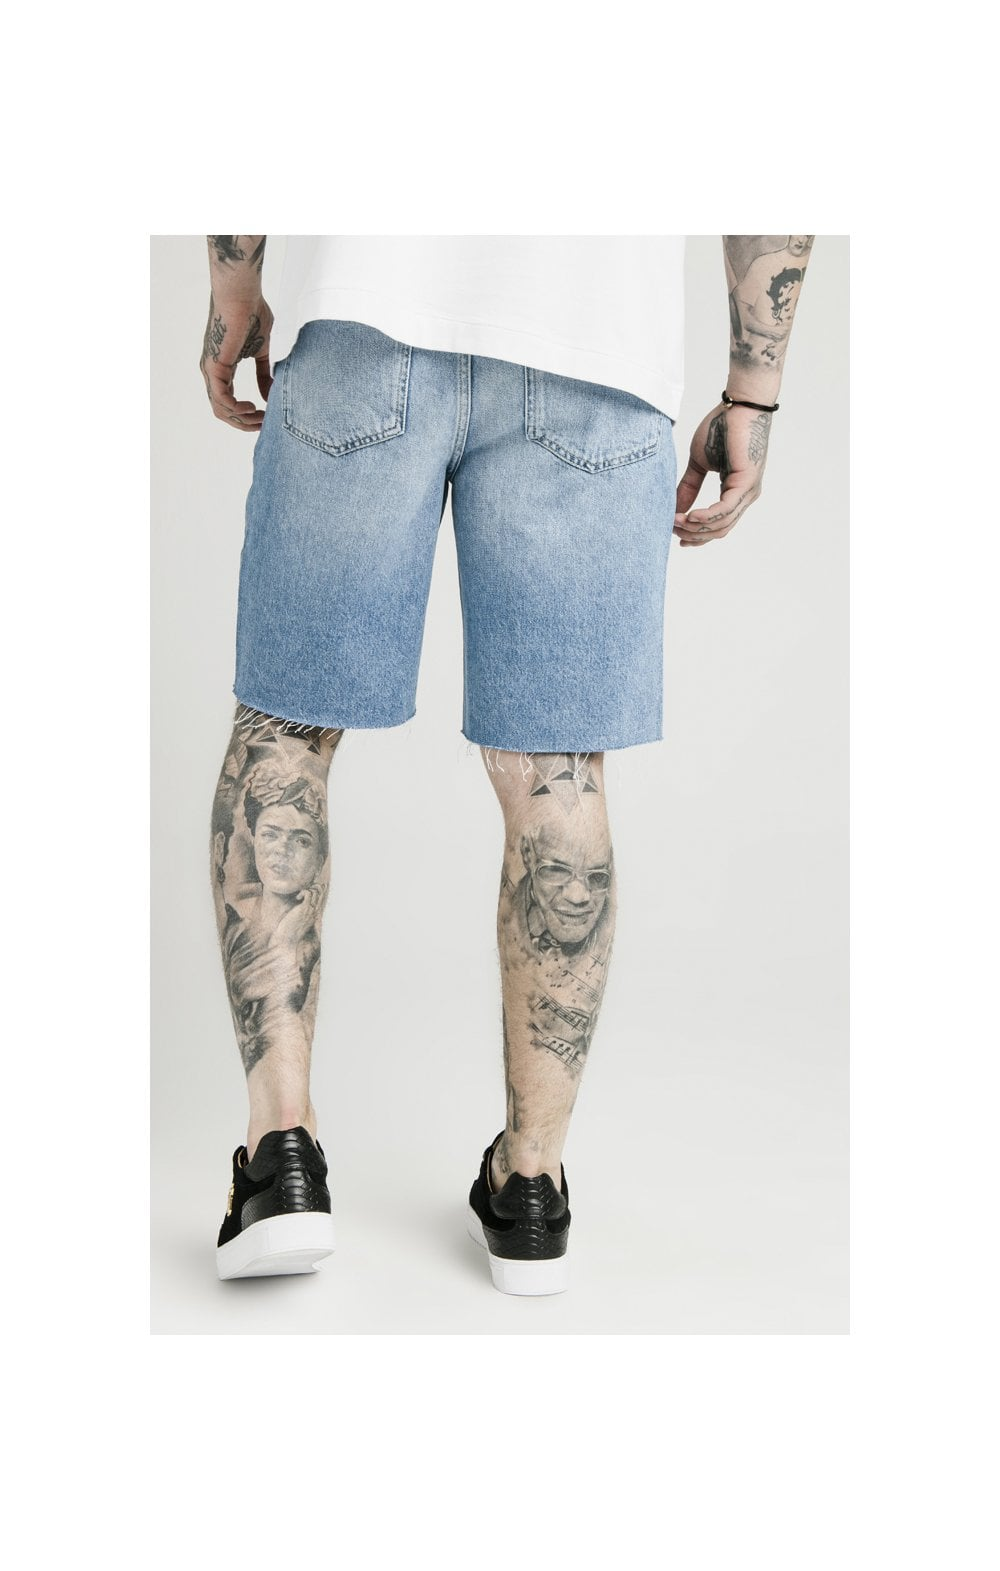 SikSilk Loose Fit Denim Shorts - Stonewash (3)